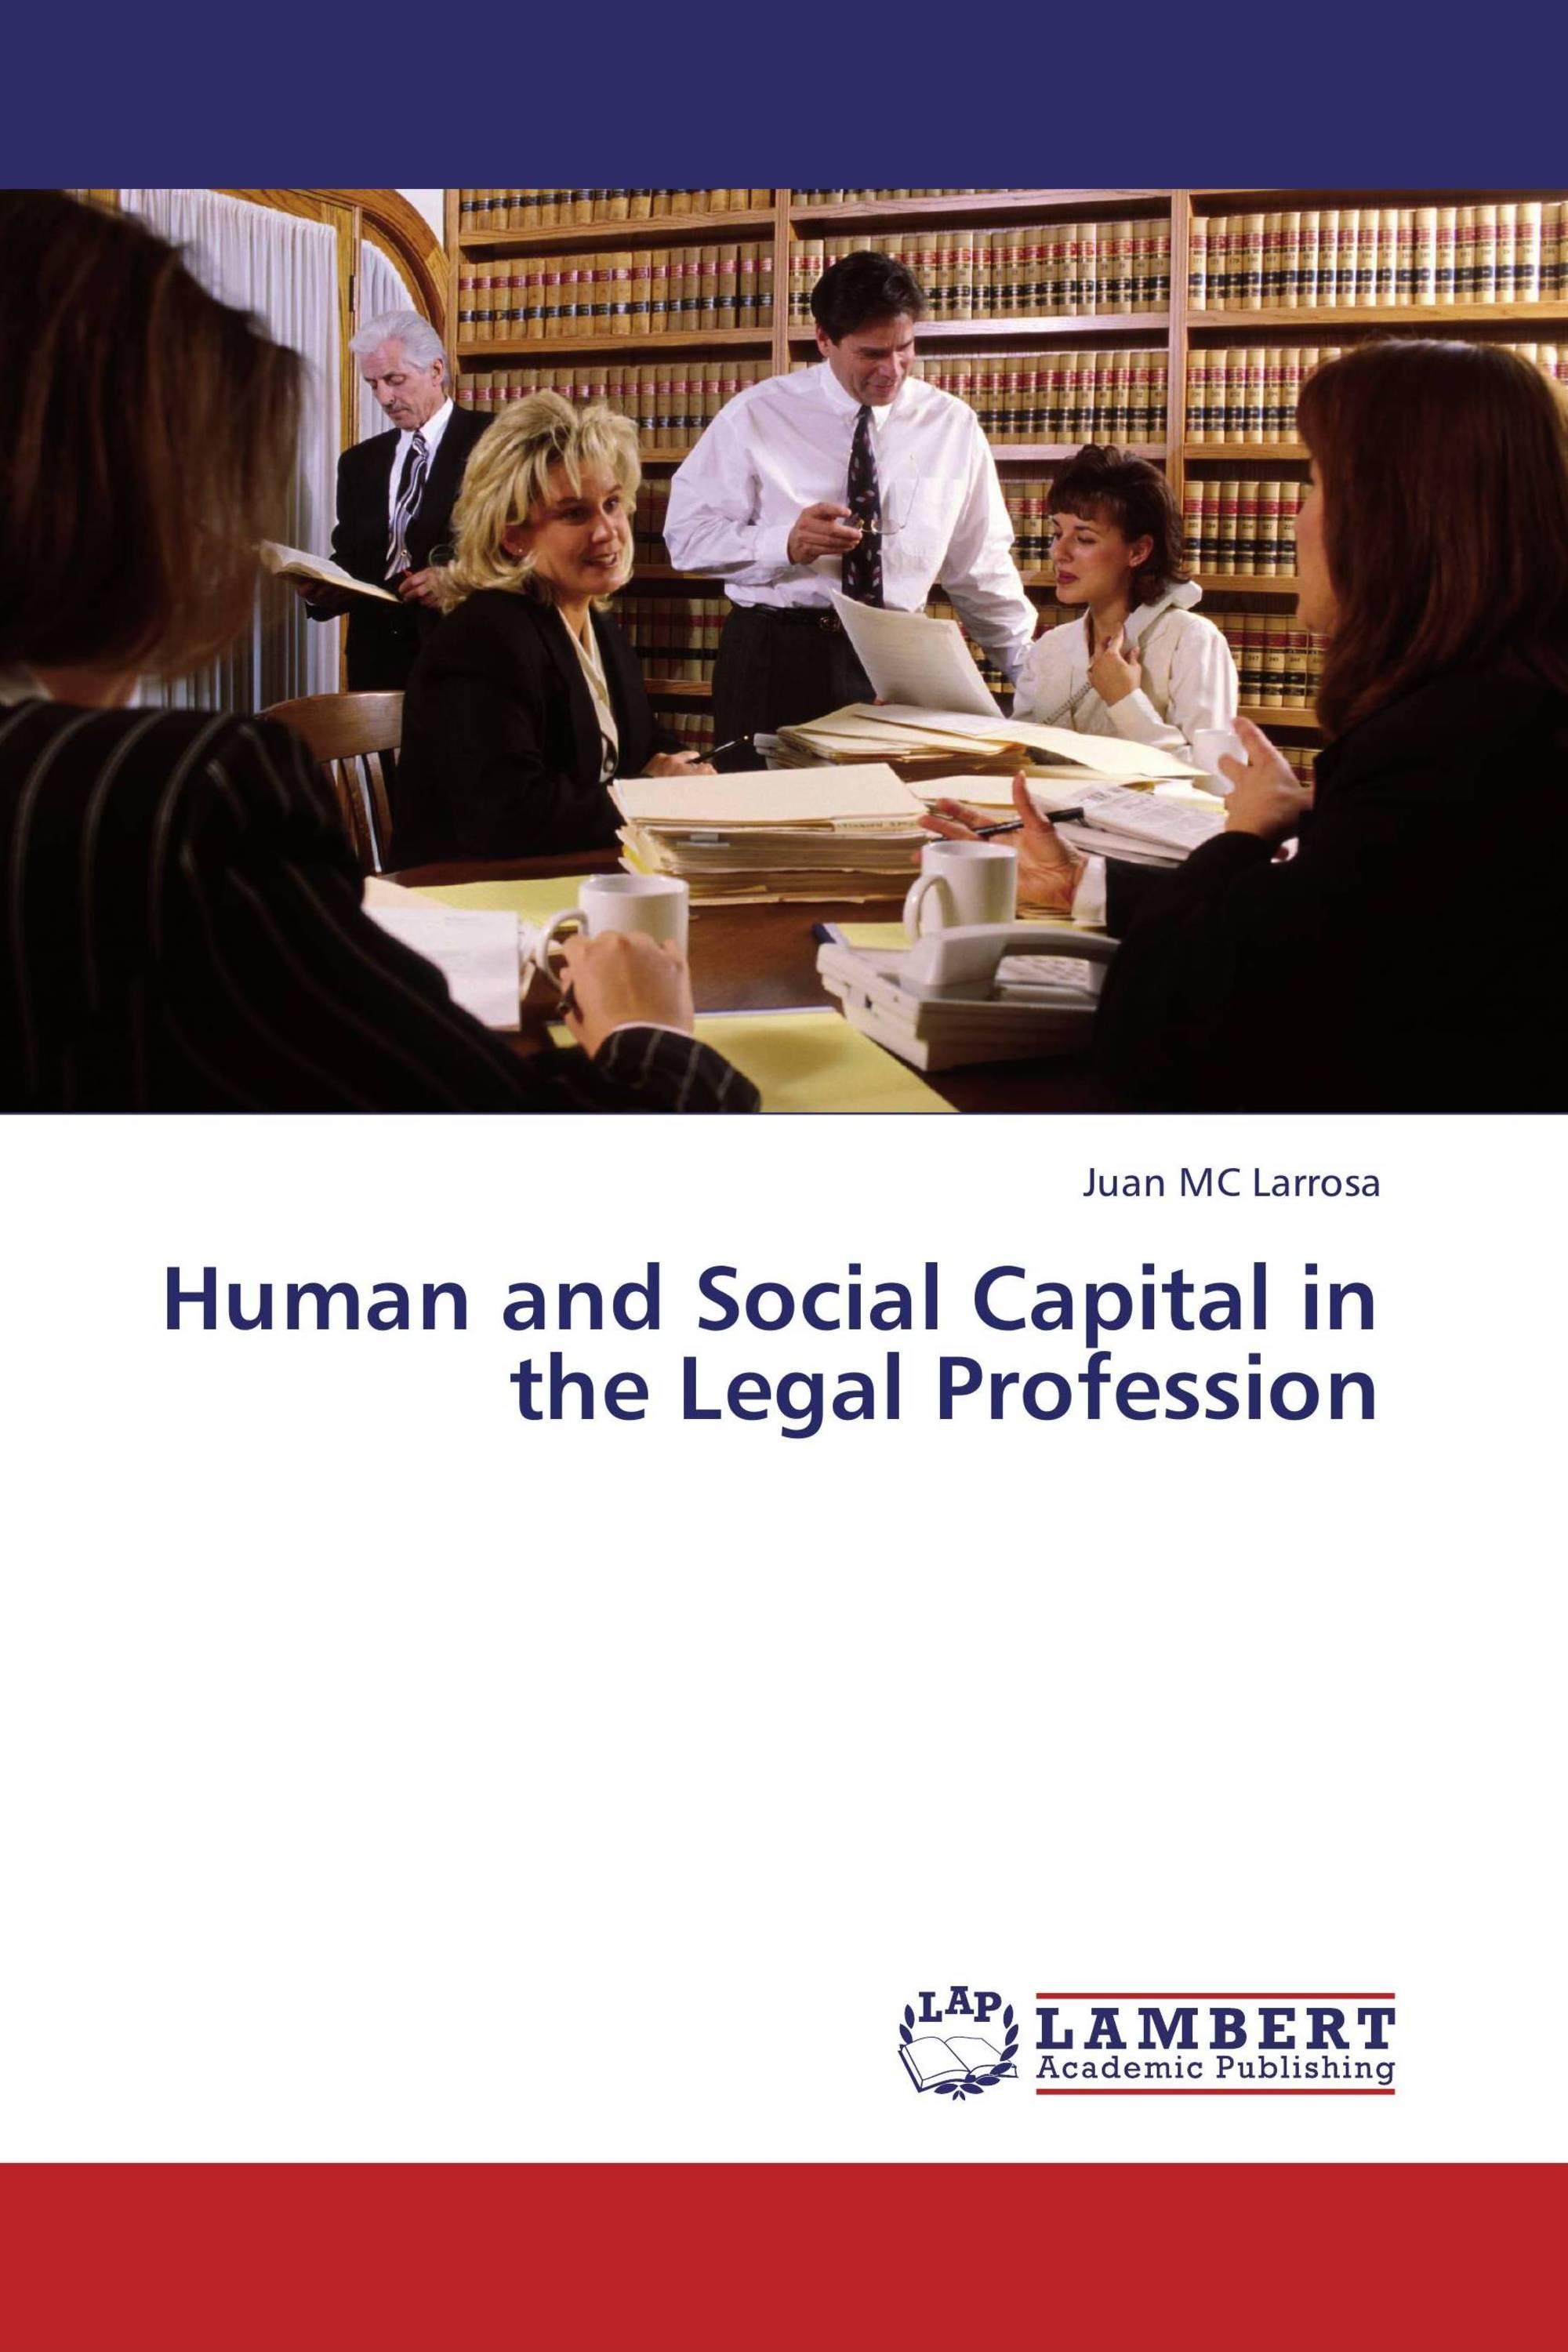 Human and Social Capital in the Legal Profession